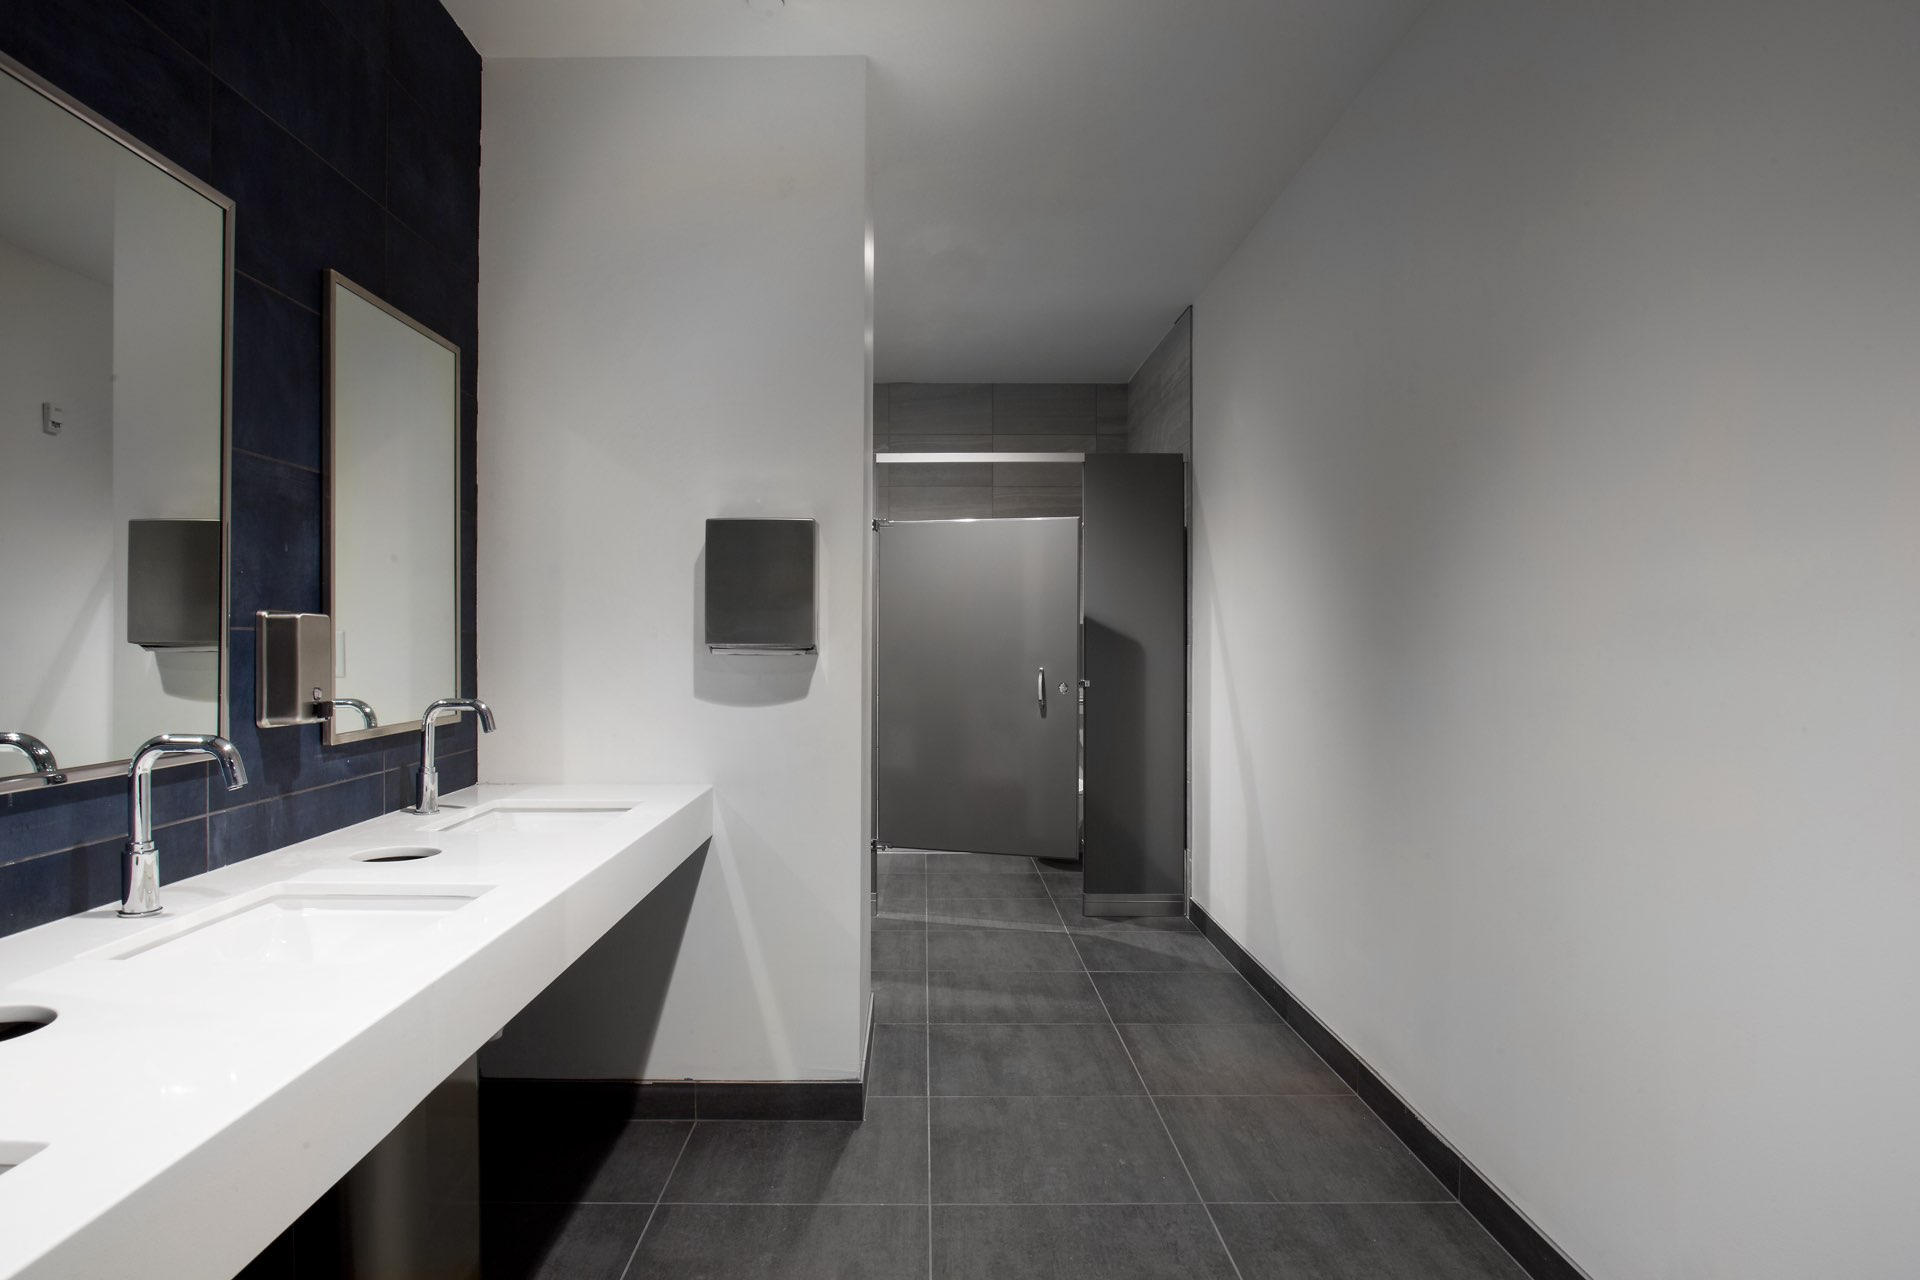 Restroom, Egyptian Black Box Theater, architectural design by Elliott Workgroup